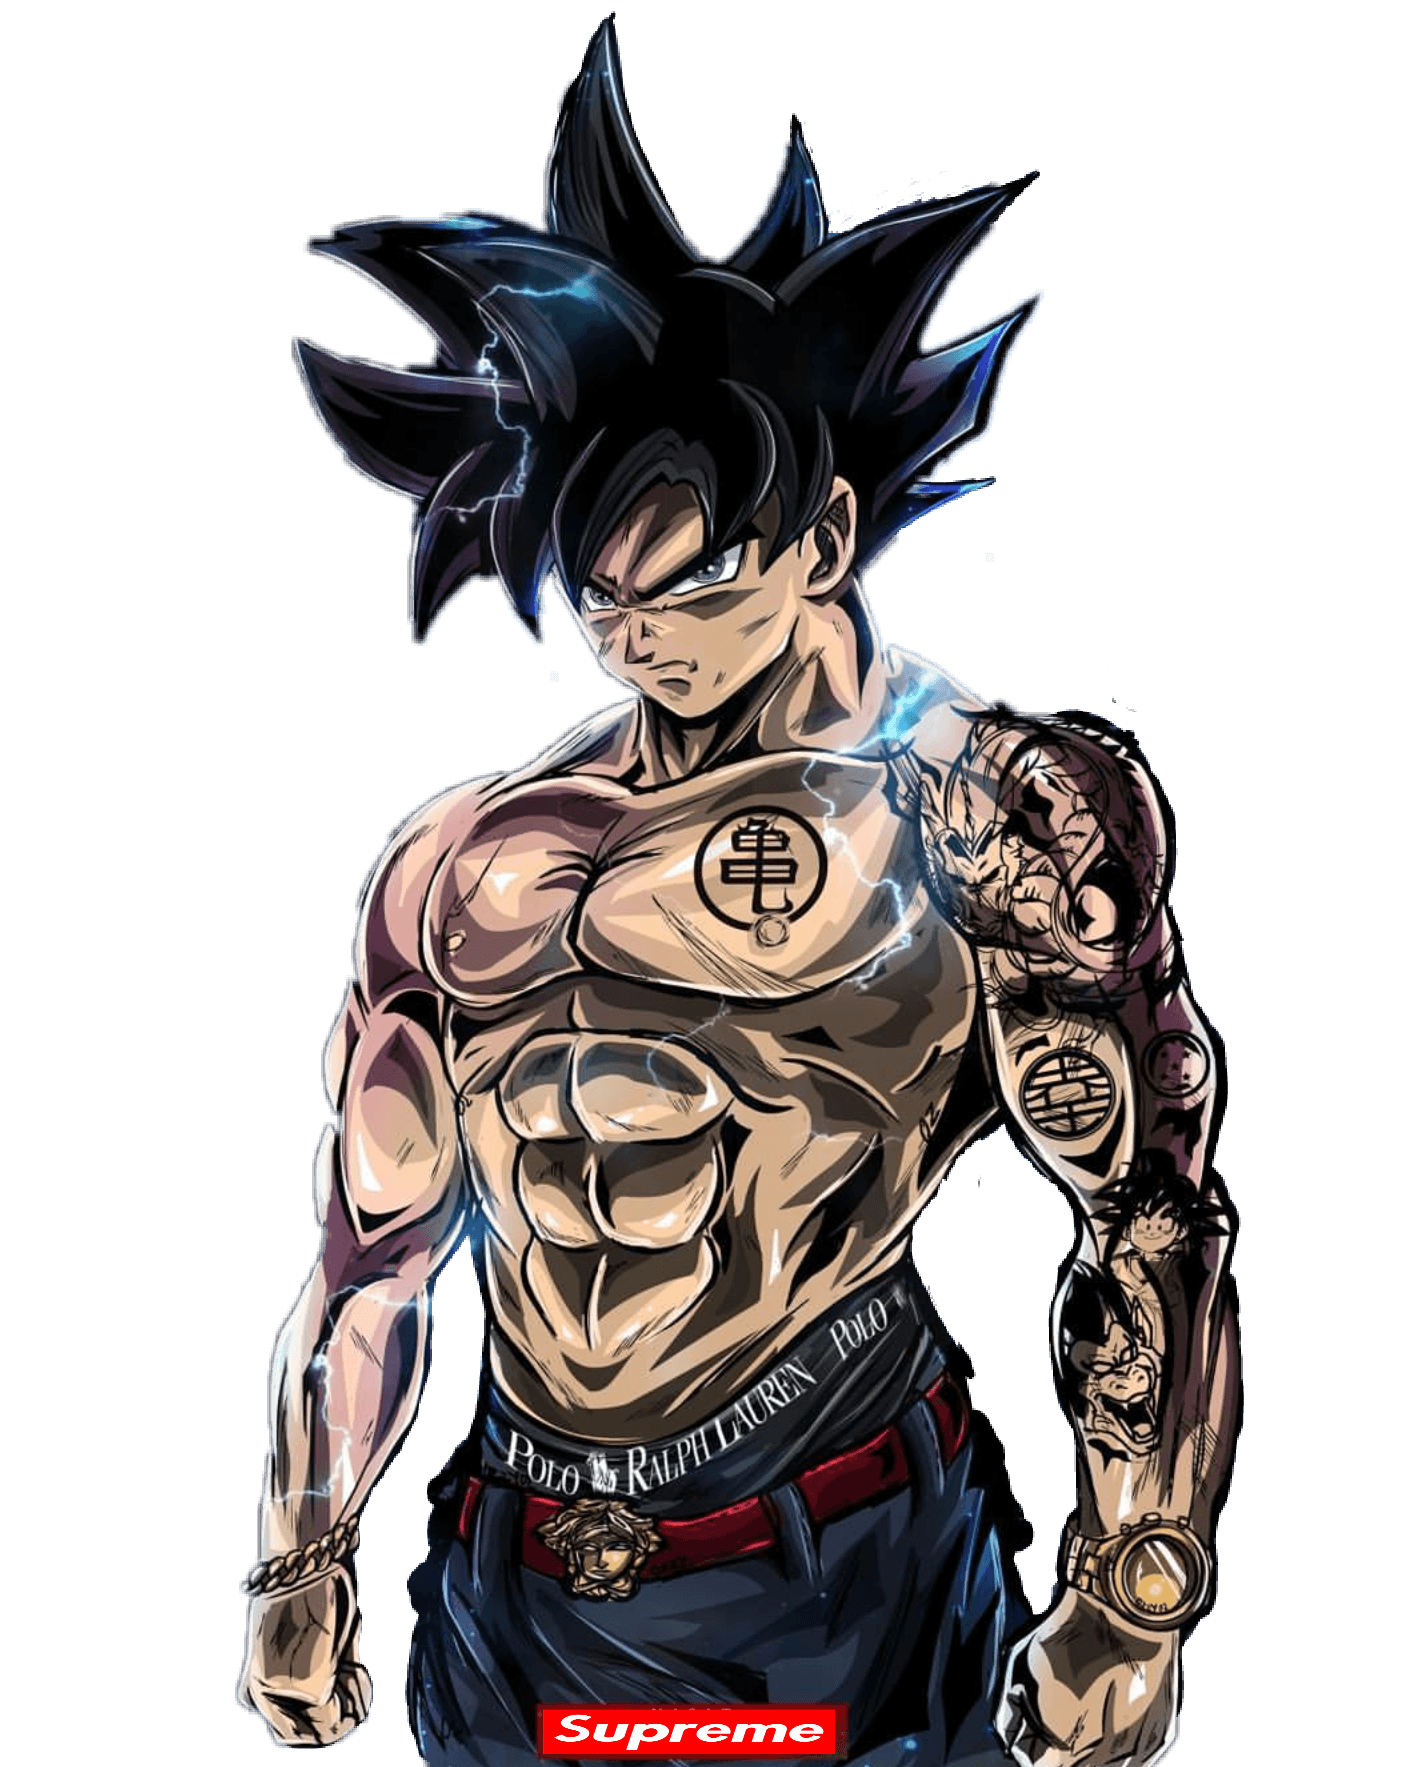 Supreme Dragon Ball Z Wallpapers   Top Supreme Dragon Ball Z 1416x1767